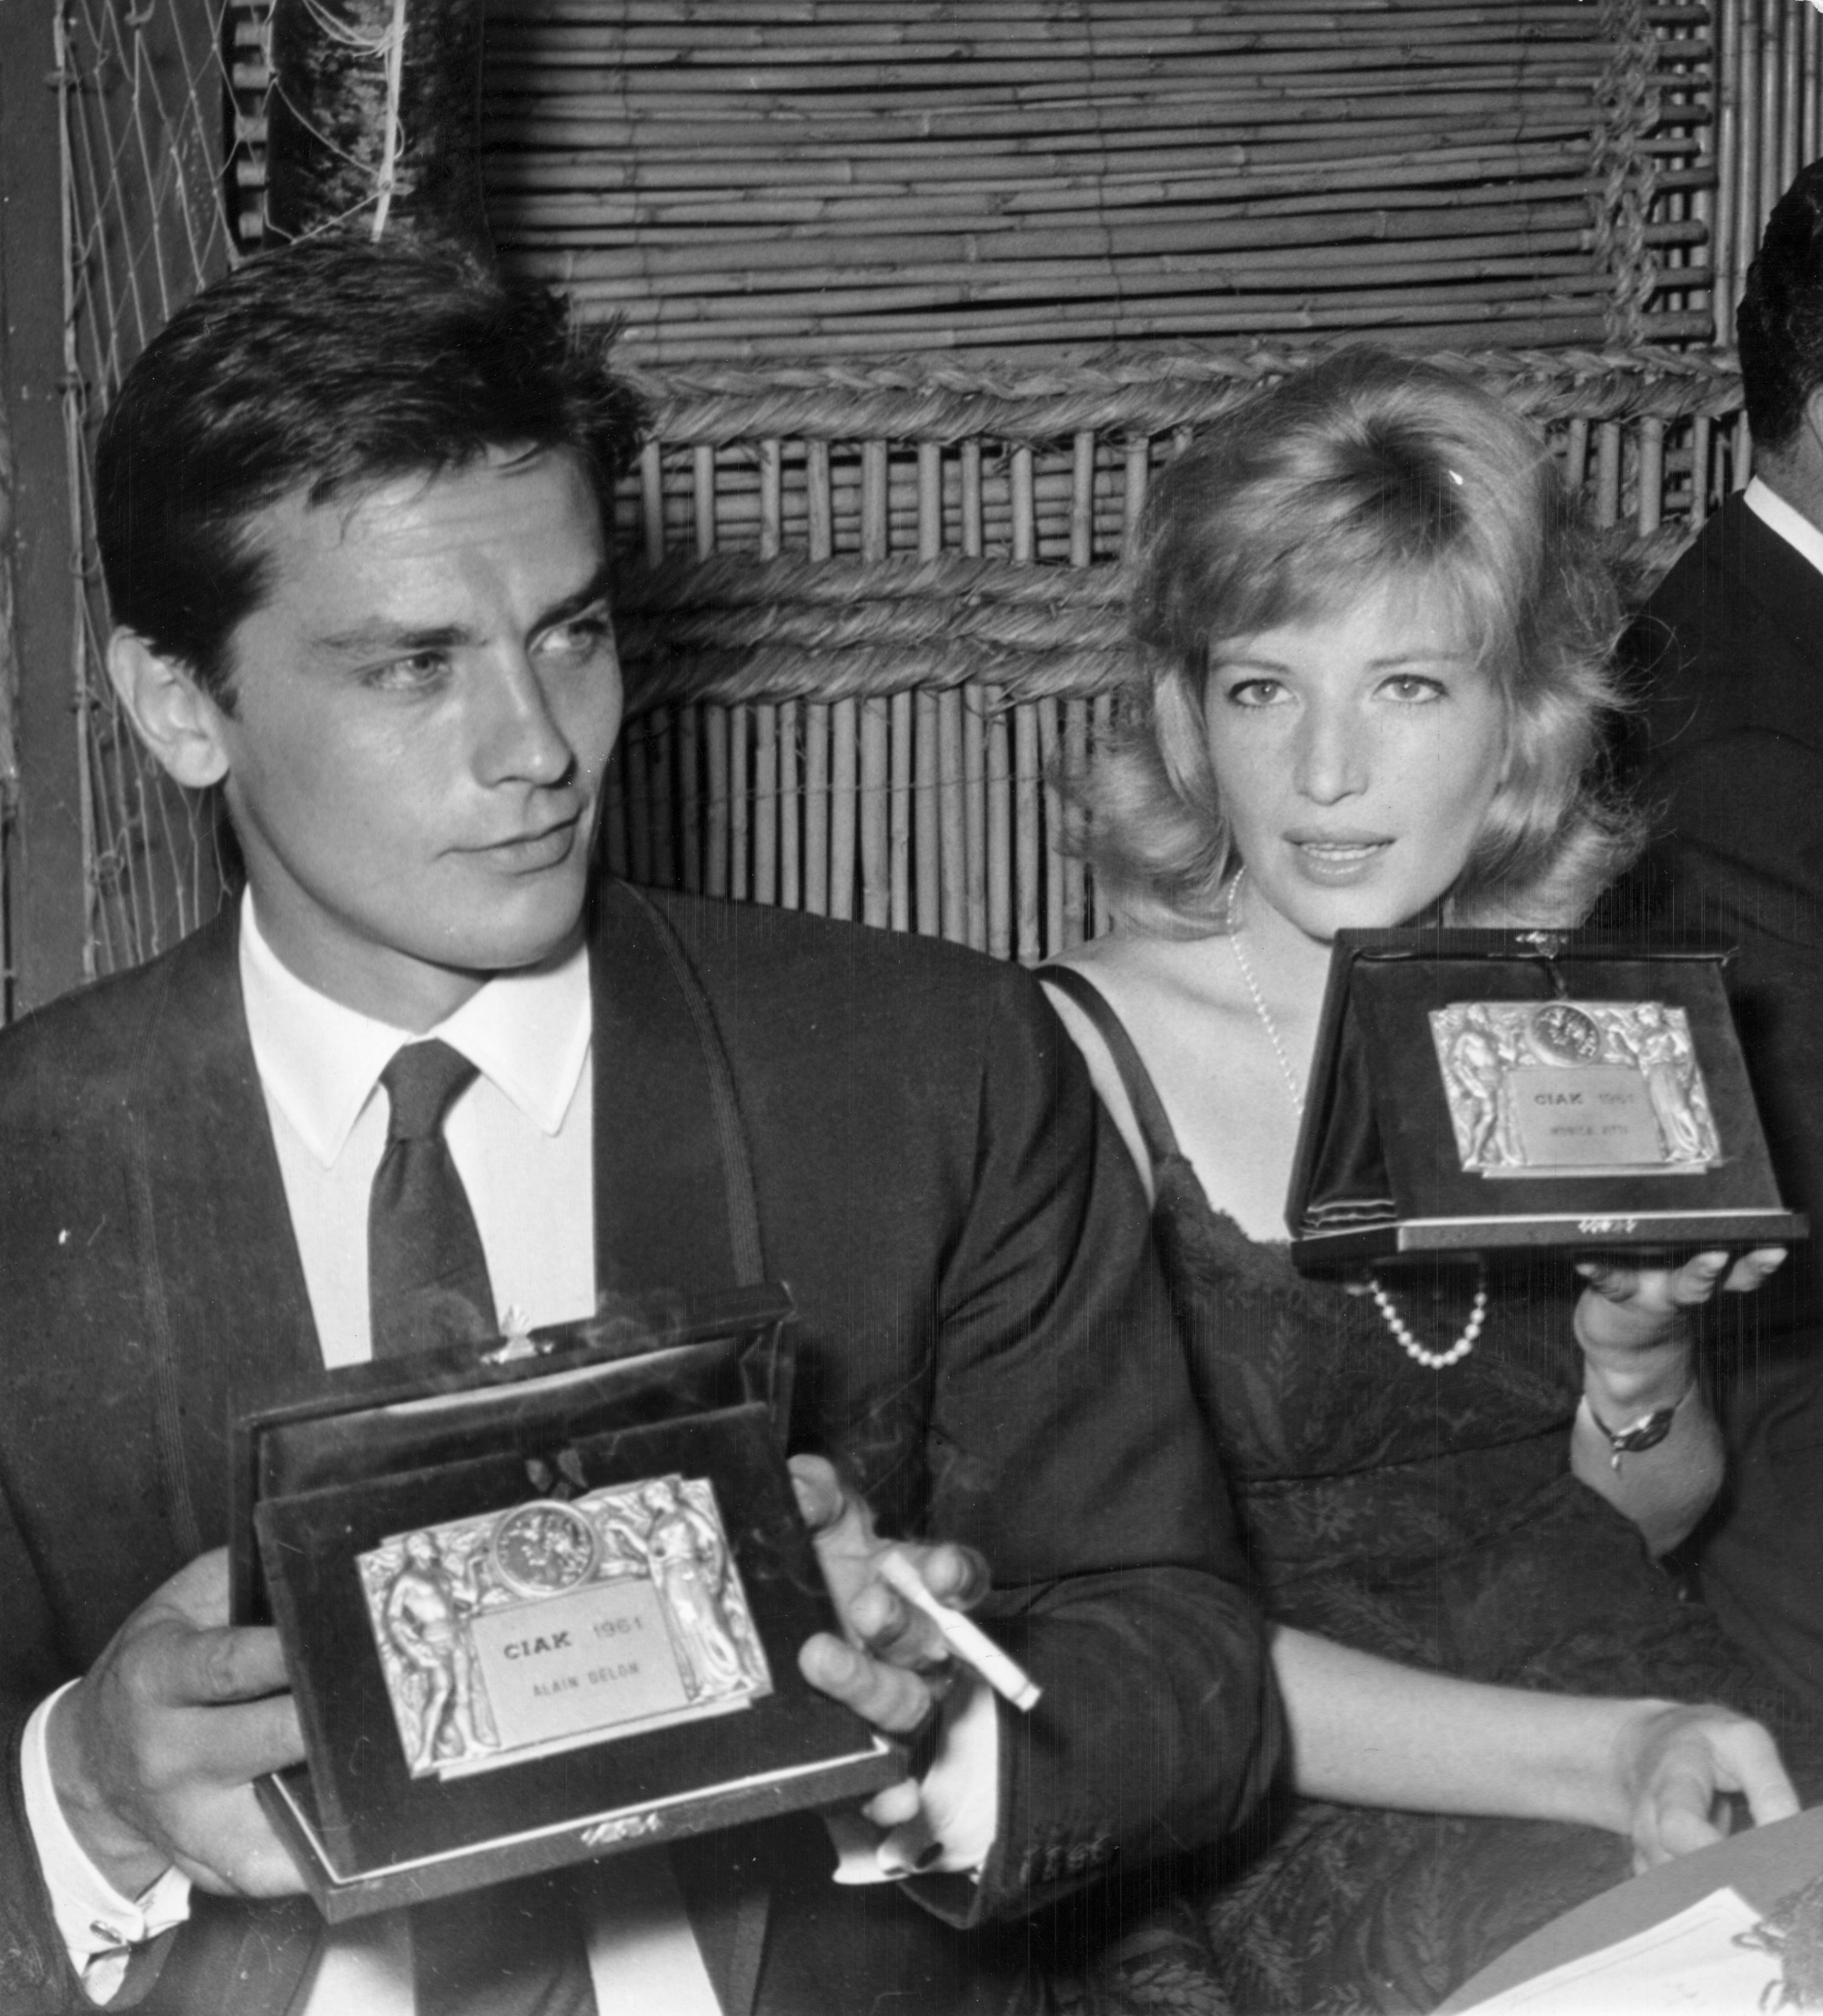 1549360757258_GettyImages-3367342 1.jpg -  Alain Delon e Monica Vitti 1961